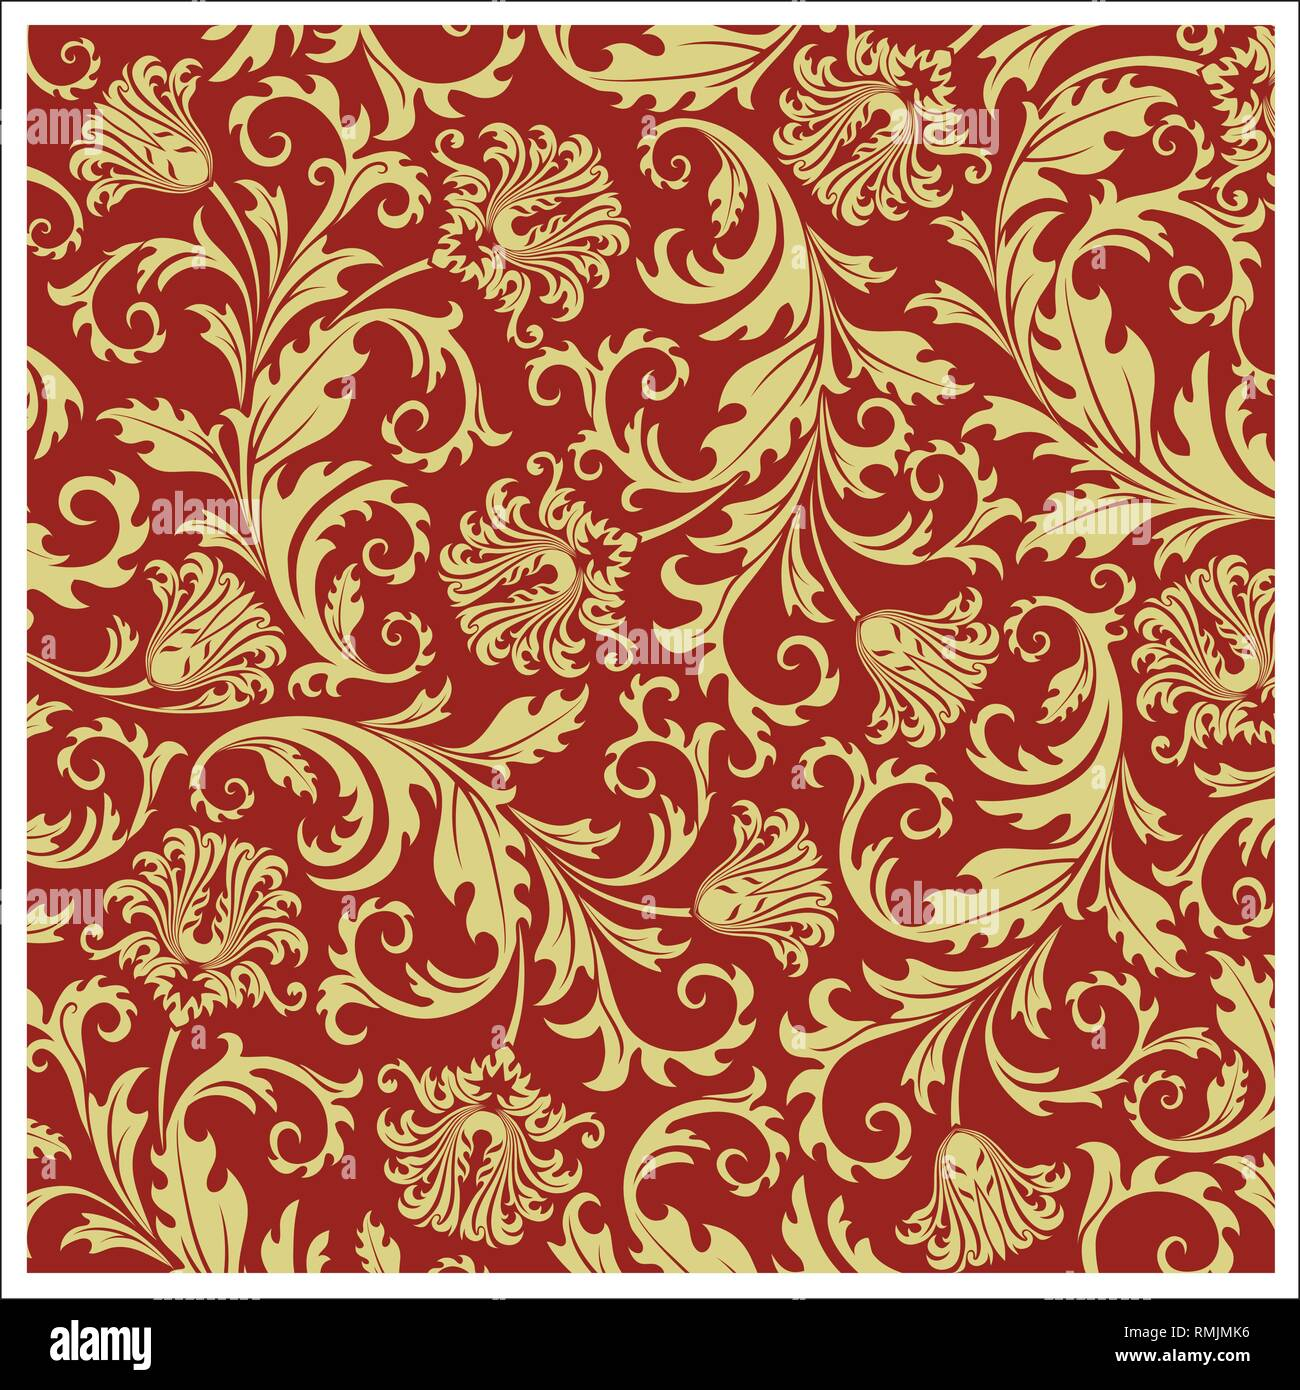 vector design batik patterns for wallpaper fabric decoration and other designs stock vector image art alamy https www alamy com vector design batik patterns for wallpaper fabric decoration and other designs image236439258 html